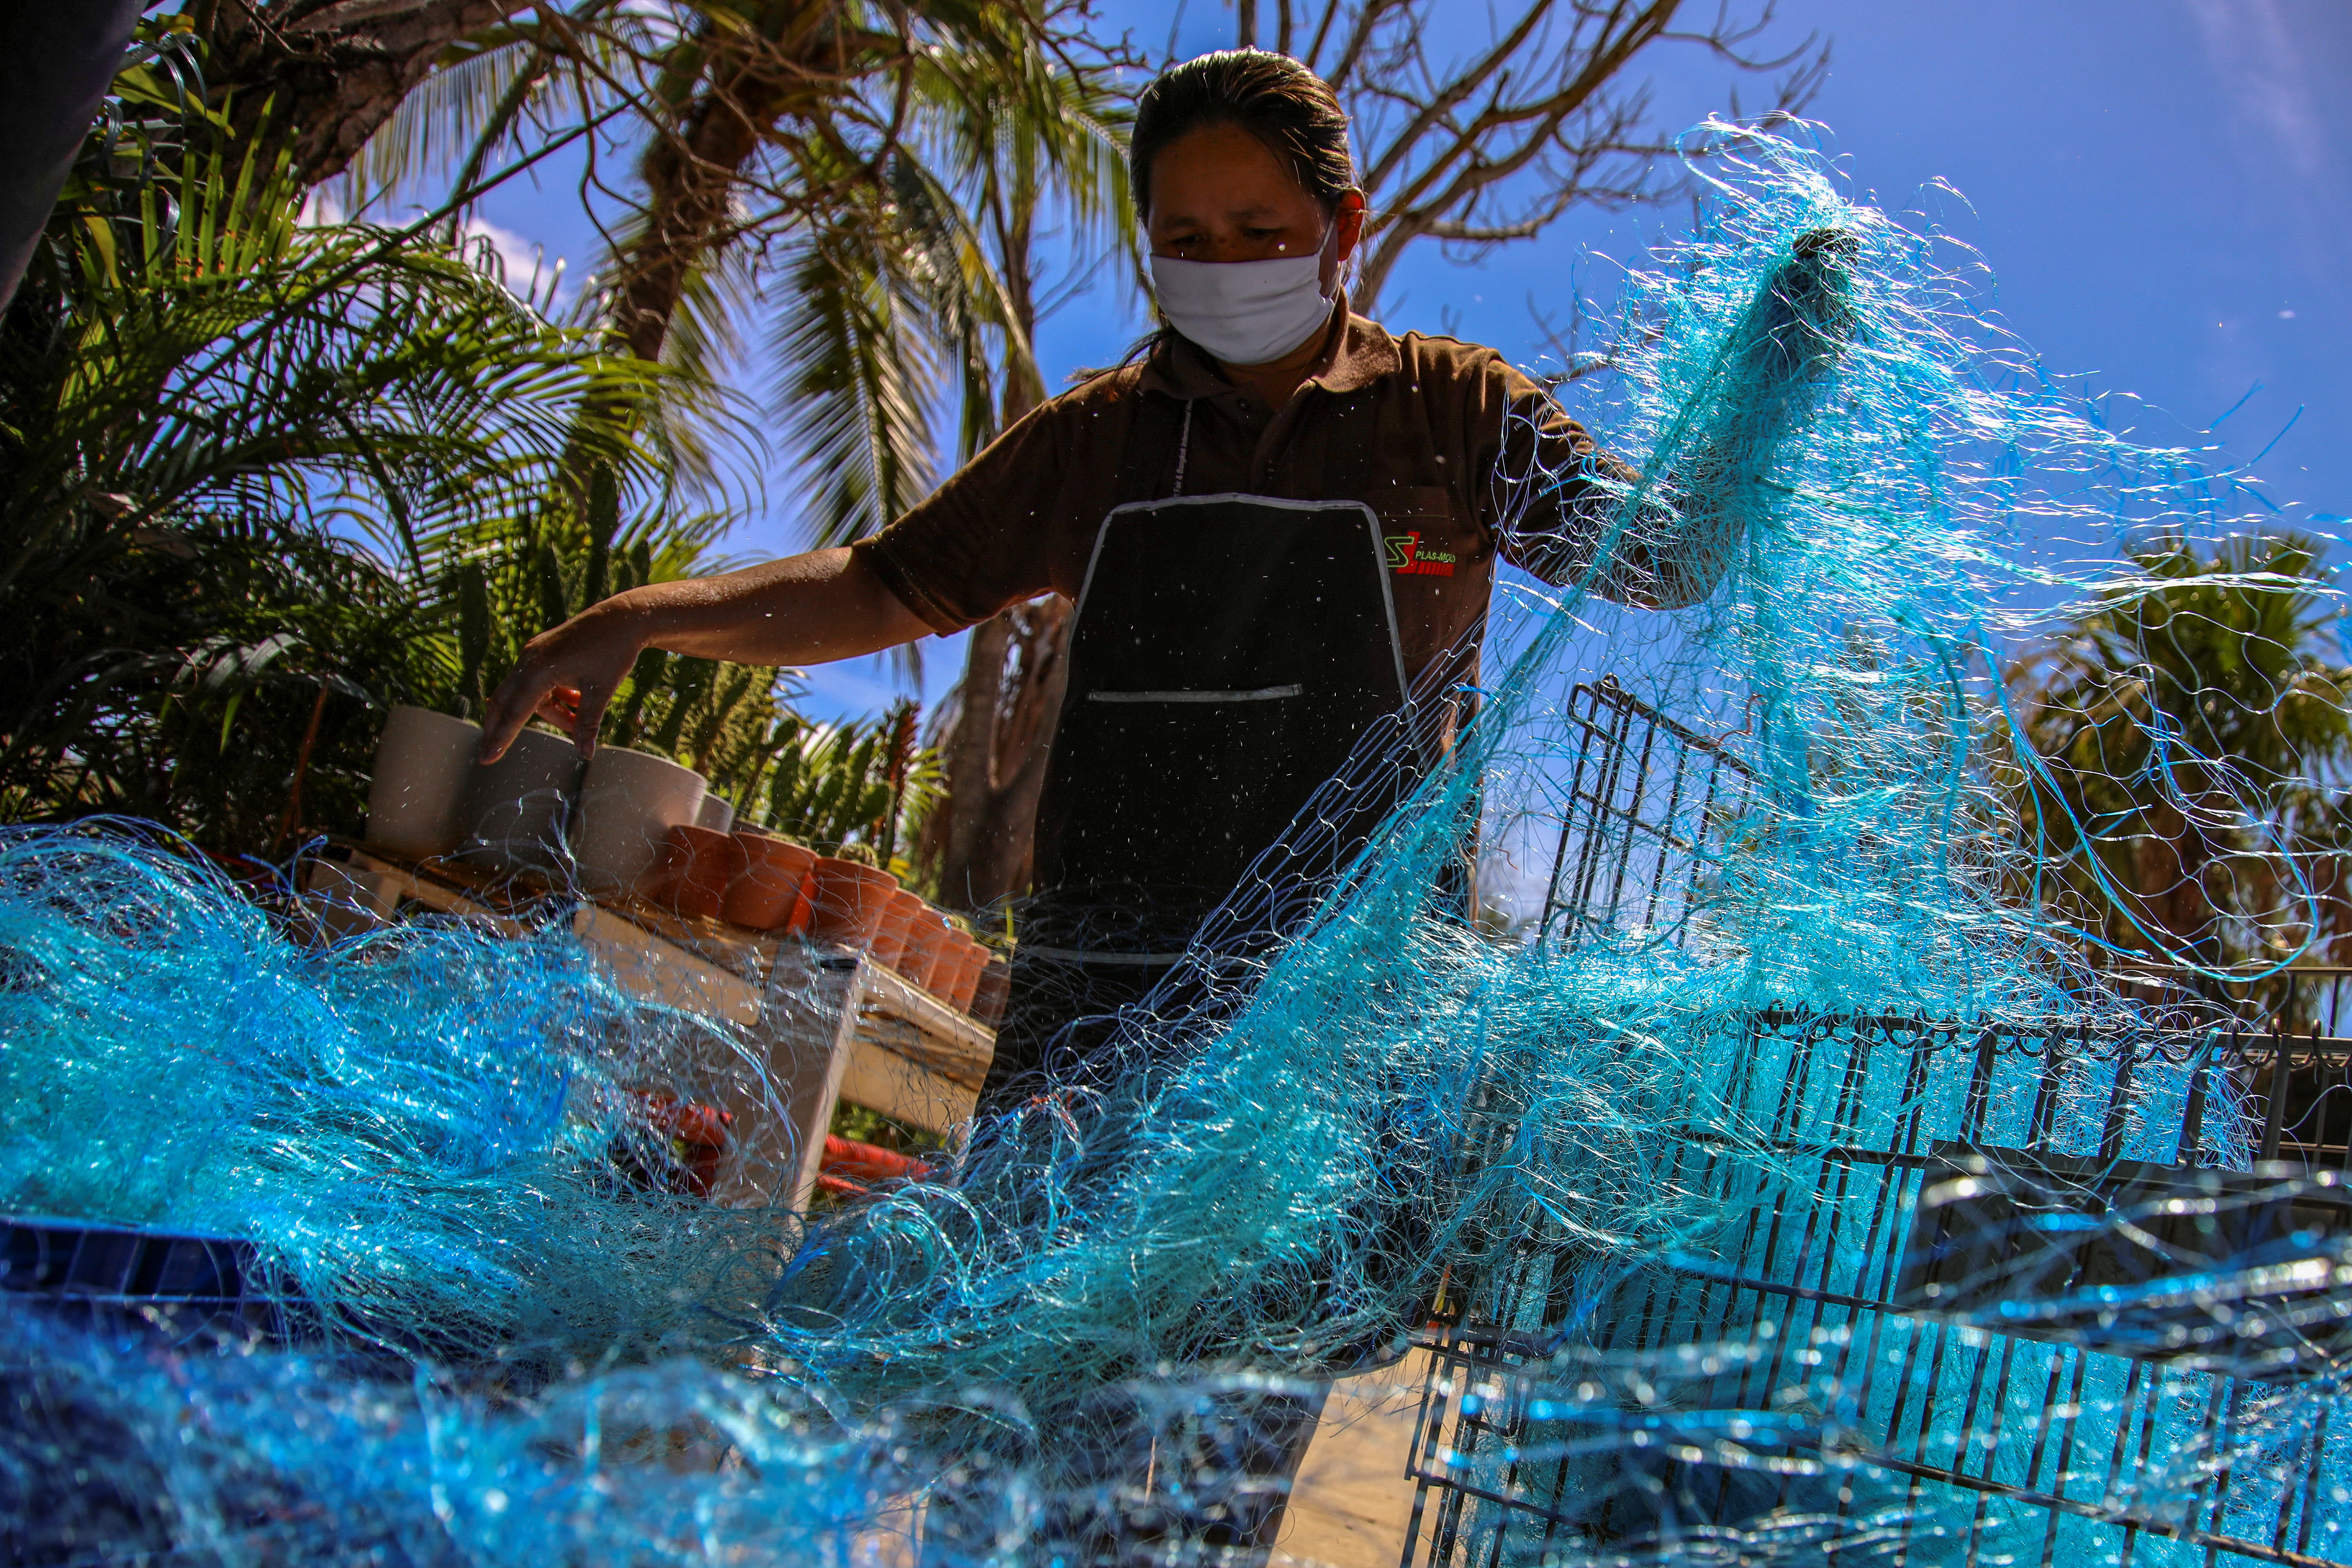 A worker prepares old fishing nets before a recycling process to create, among new products, protective gear against the coronavirus disease (COVID-19) at the Saint Louis Plas Mold factory amid the COVID-19 outbreak in Ayutthaya province, Thailand, June 30, 2020. Picture taken June 30, 2020. REUTERS/Juarawee Kittisilpa - RC2YKH98ALLO